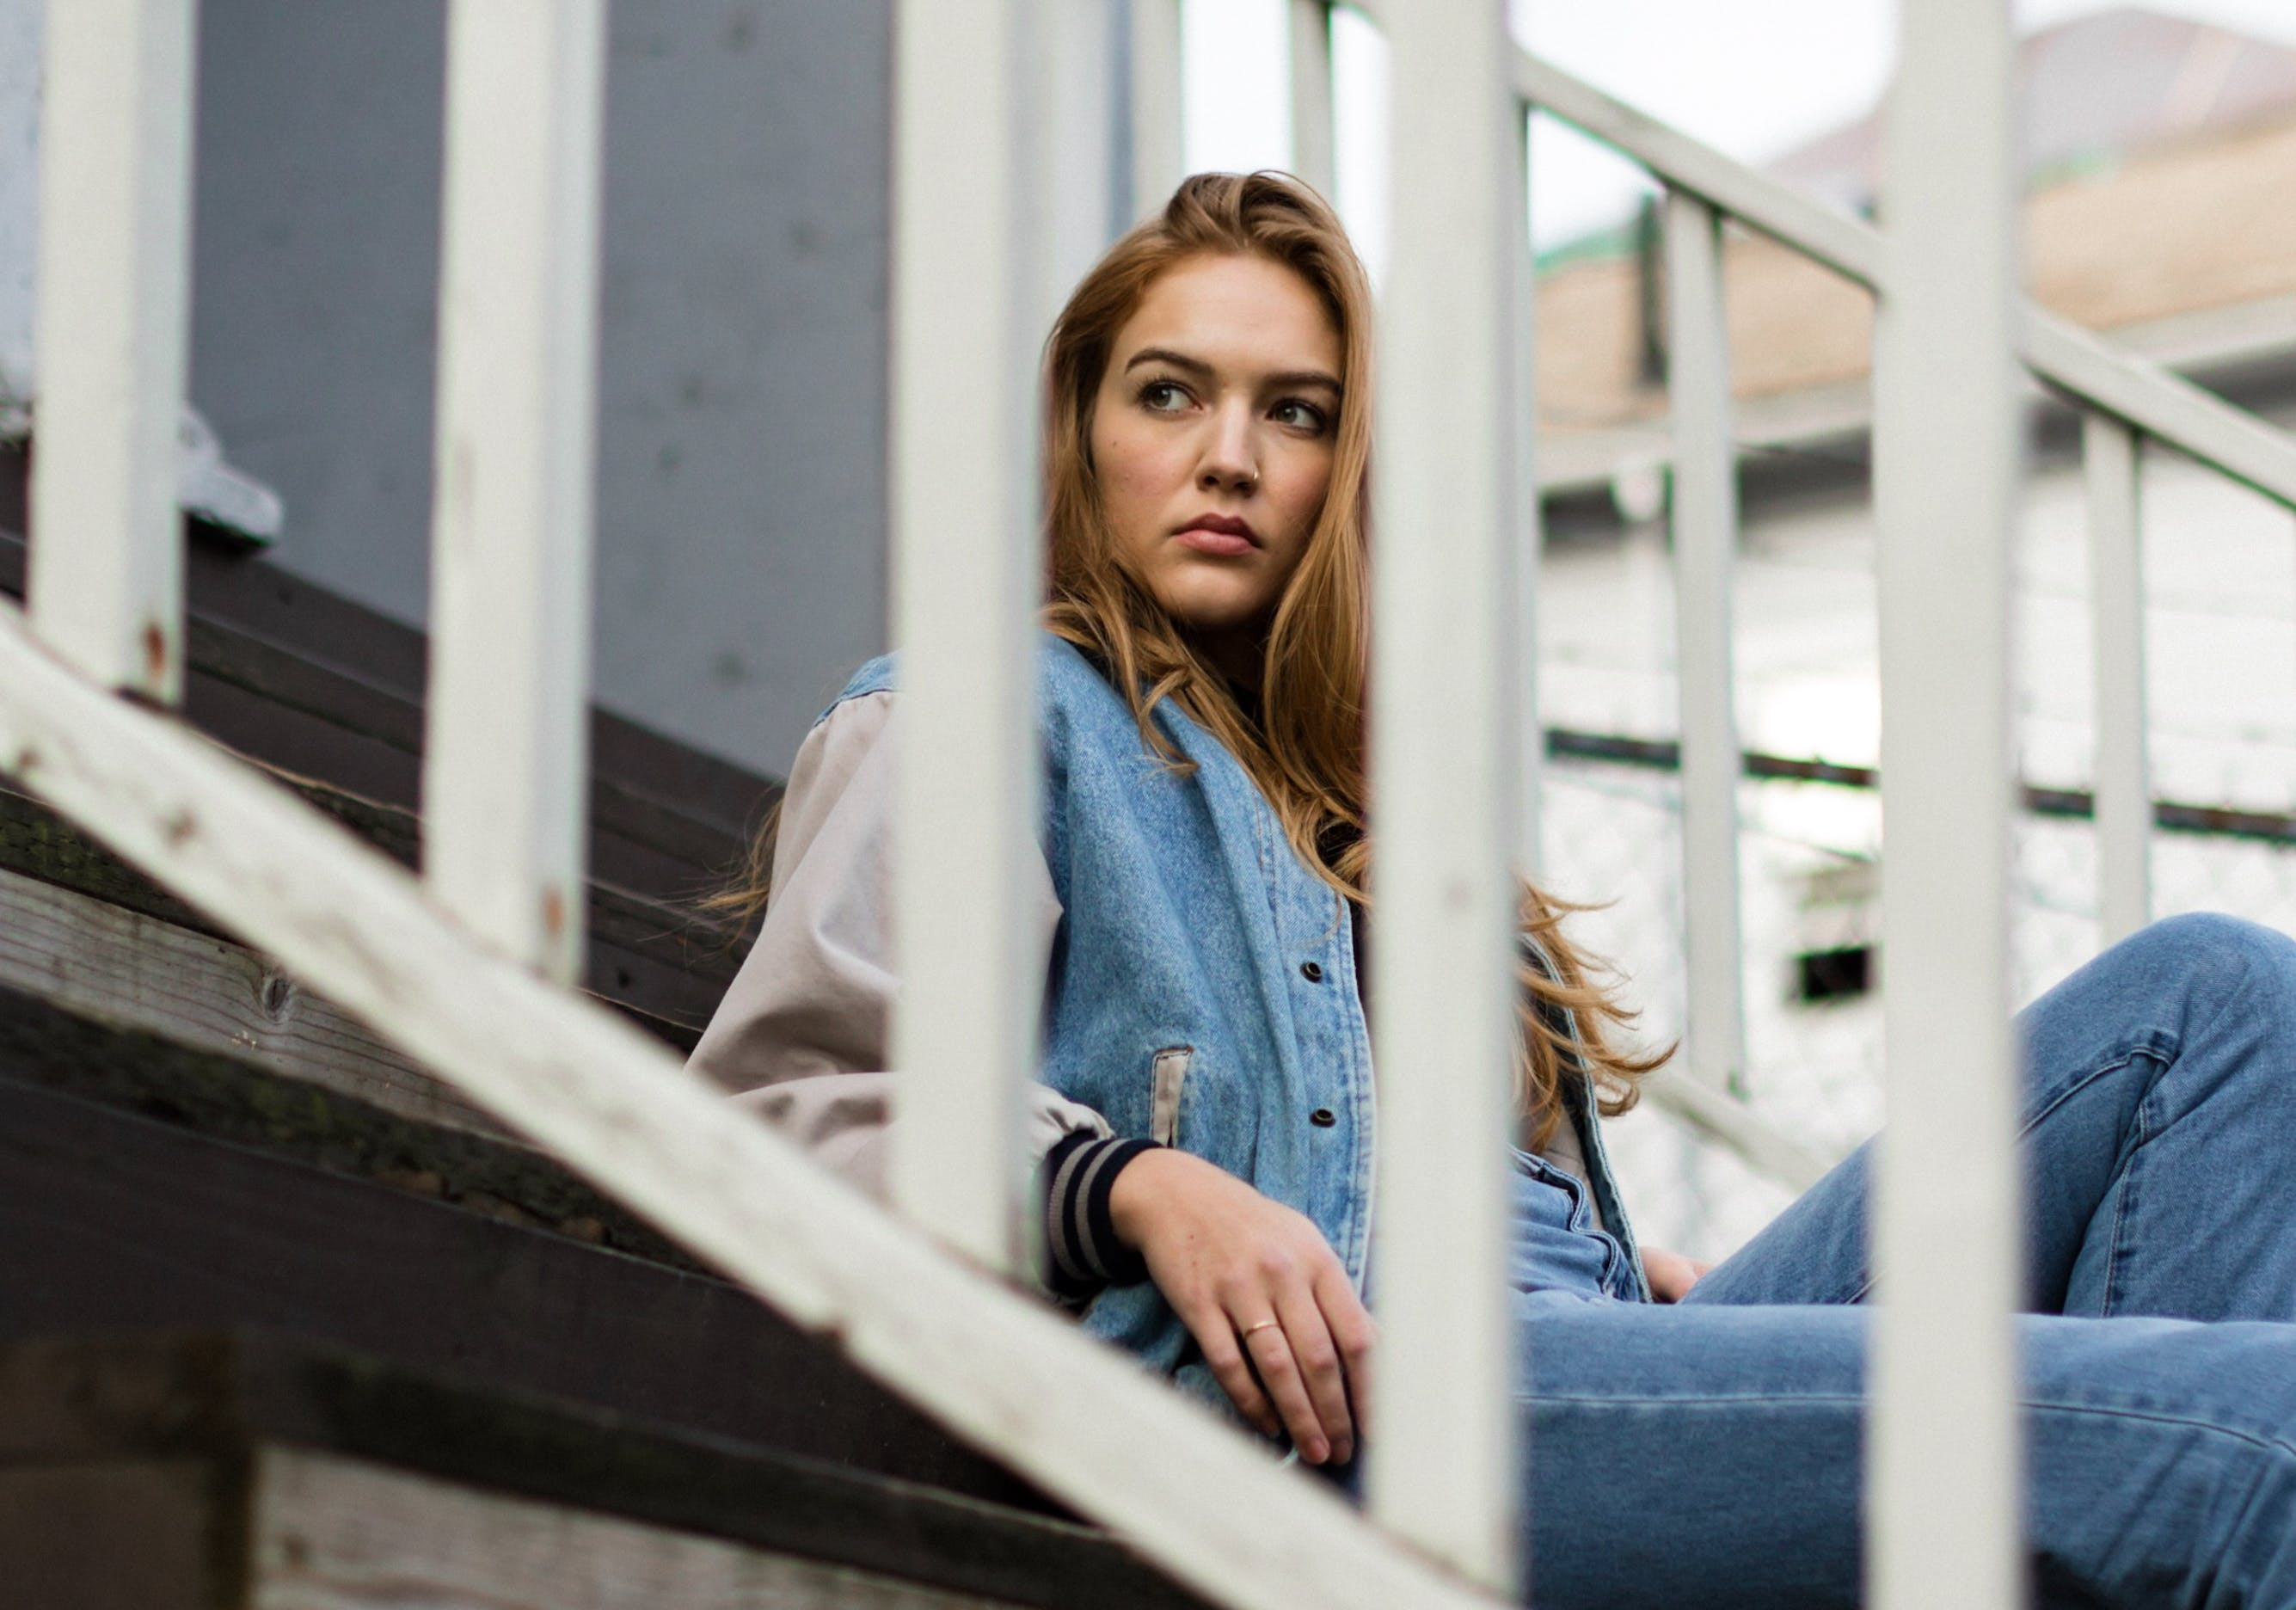 Woman Wearing Blue Denim Jacket and Blue Denim Jeans Sitting on Staircase